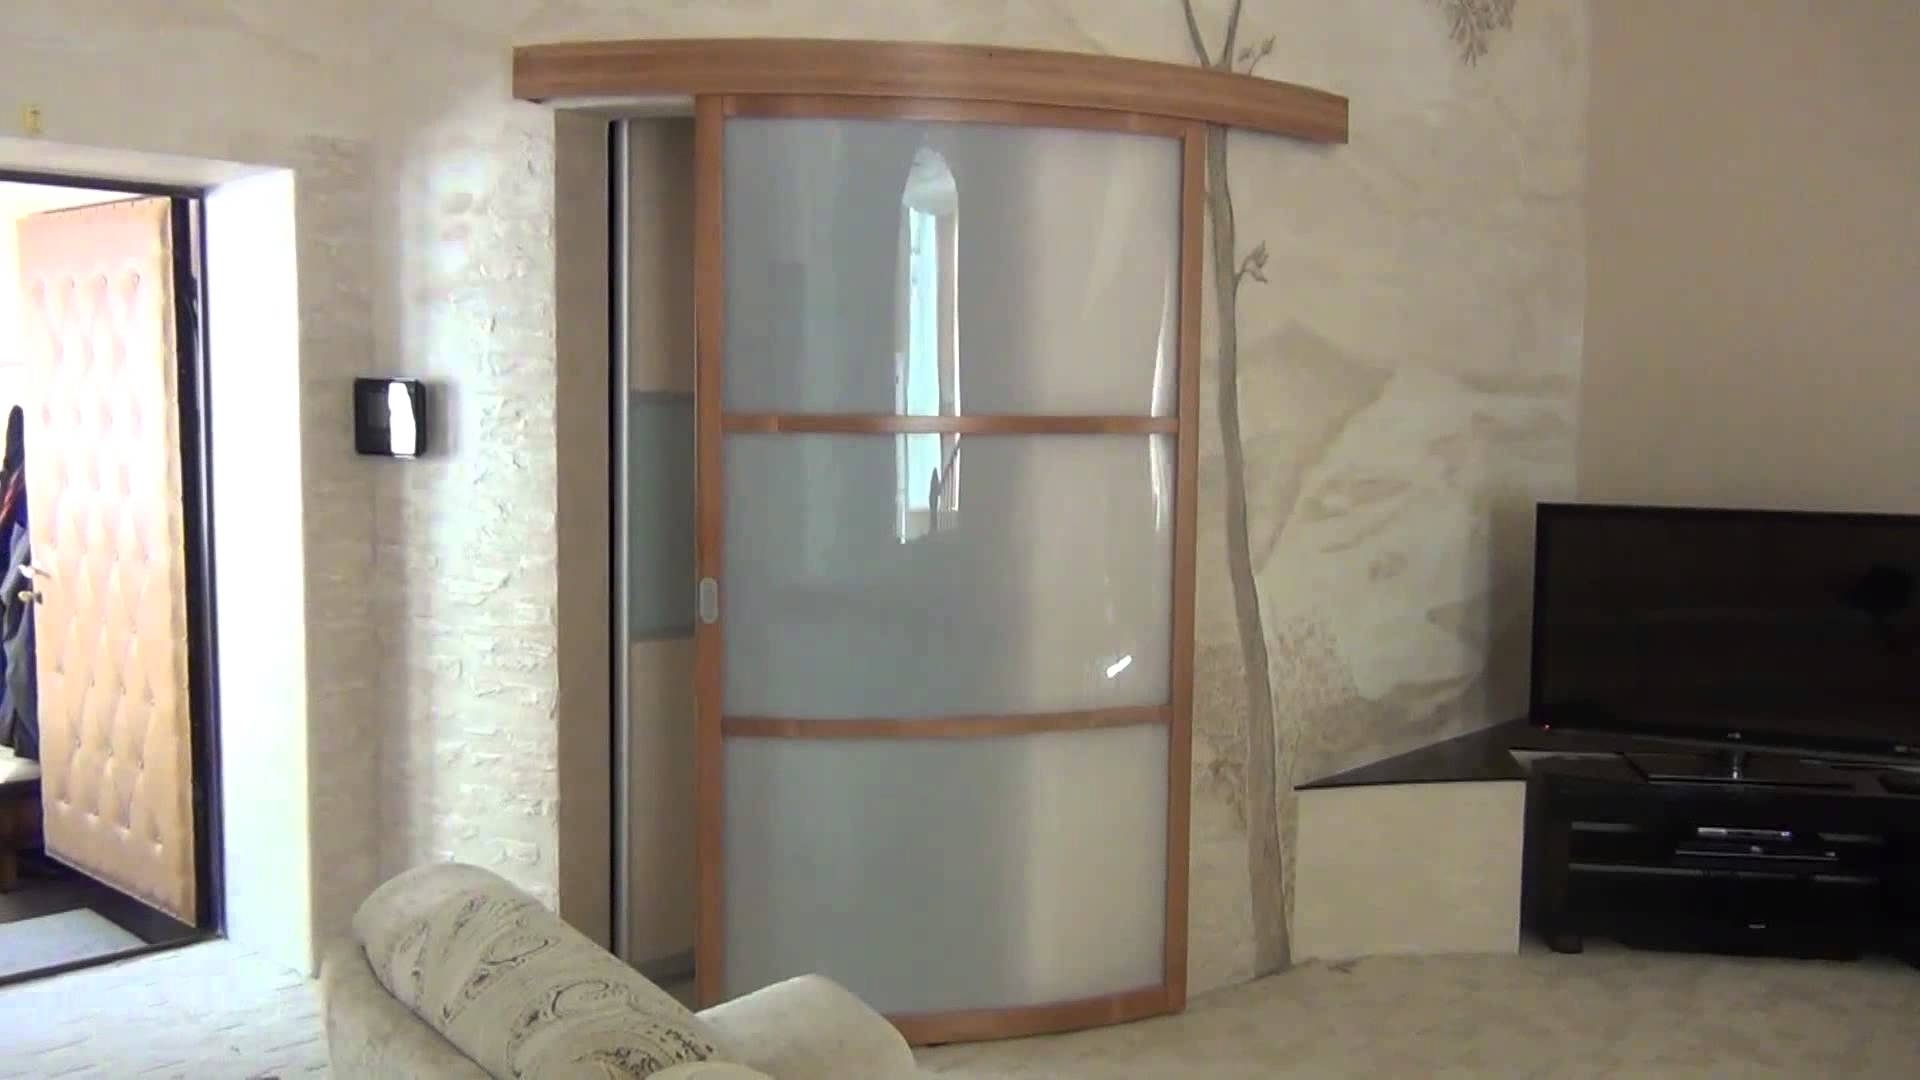 Most Recent Curved Sliding Door – Youtube Inside Curved Wardrobe Doors (View 12 of 15)